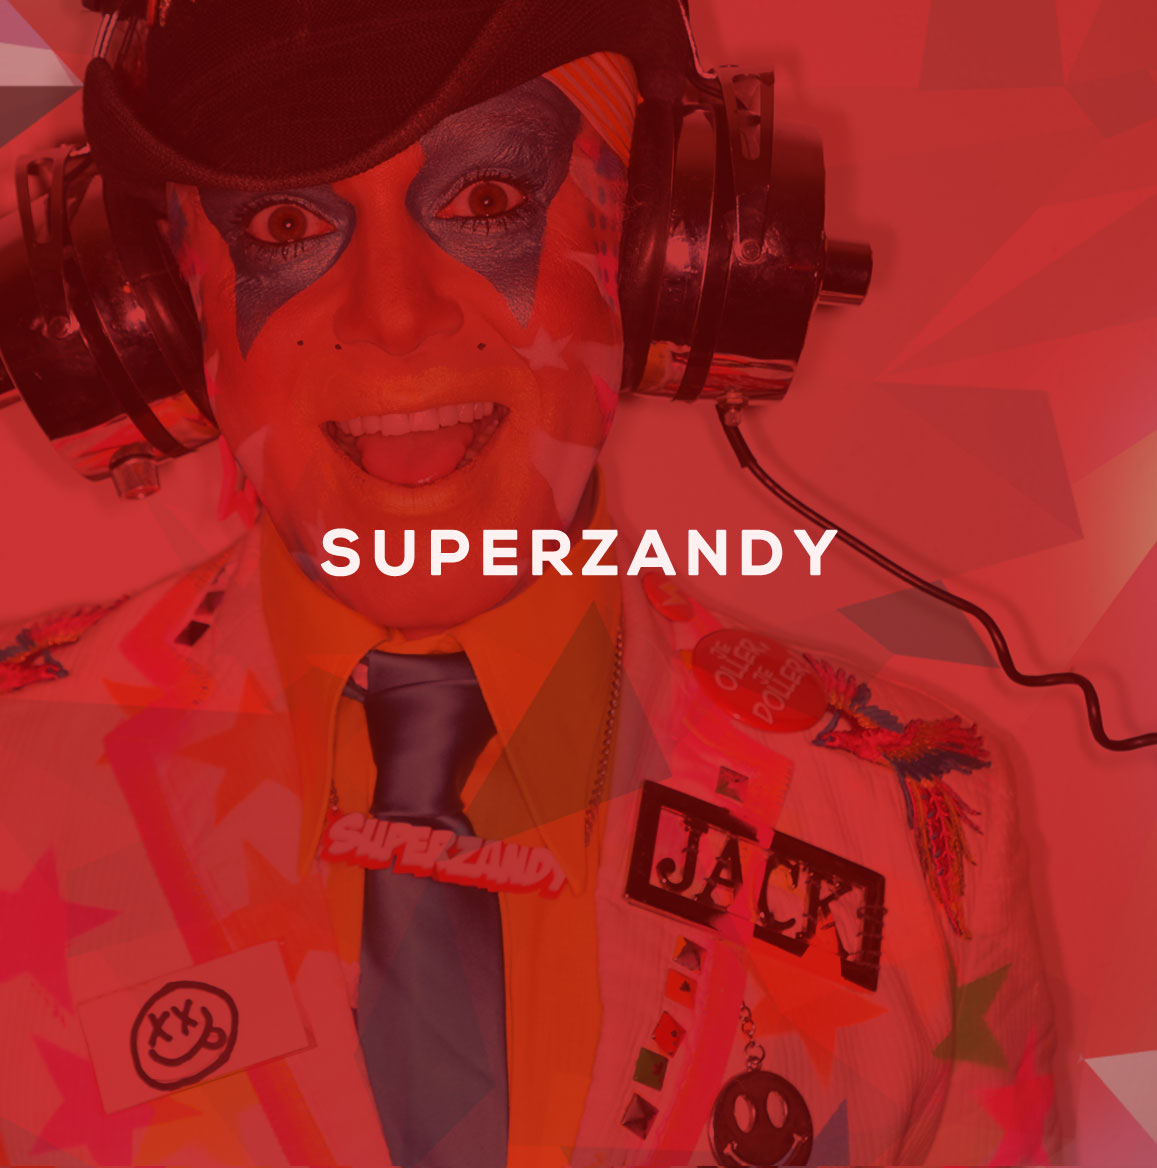 HP-Act-superzandy